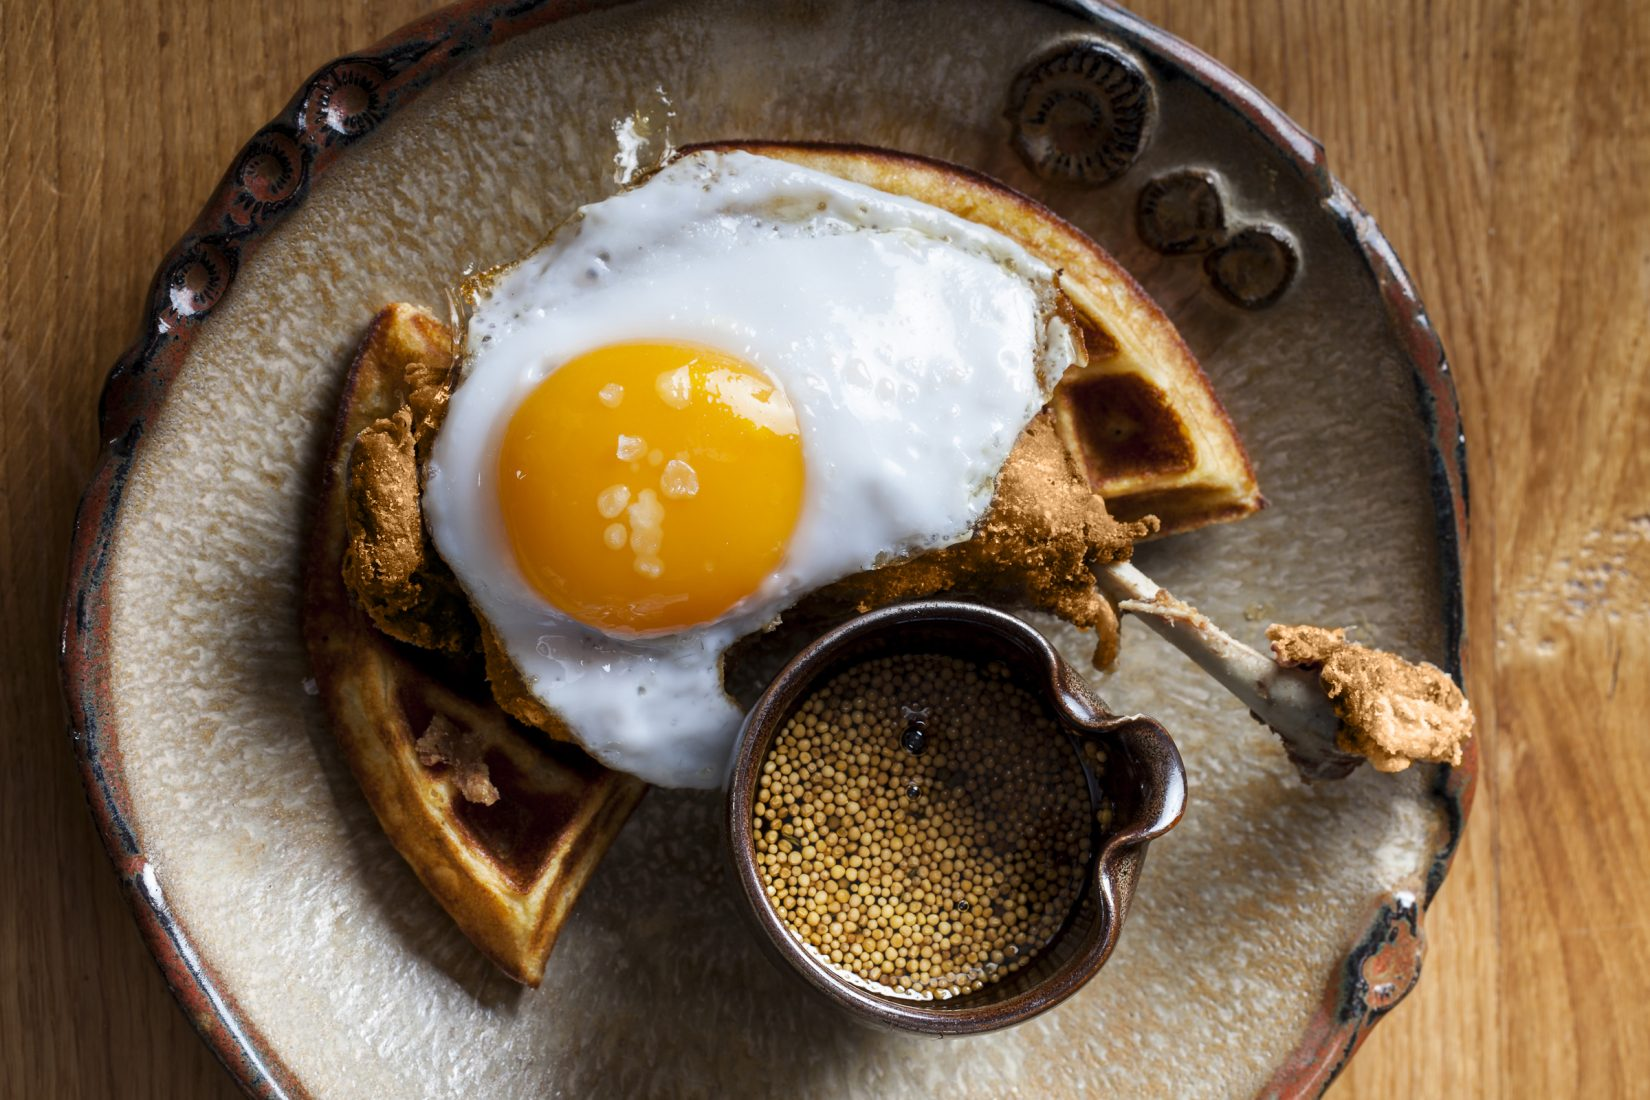 Your Weekly Indulgence: Sweet and Savory Breakfast-Inspired Dishes from SUGARCANE raw bar grill